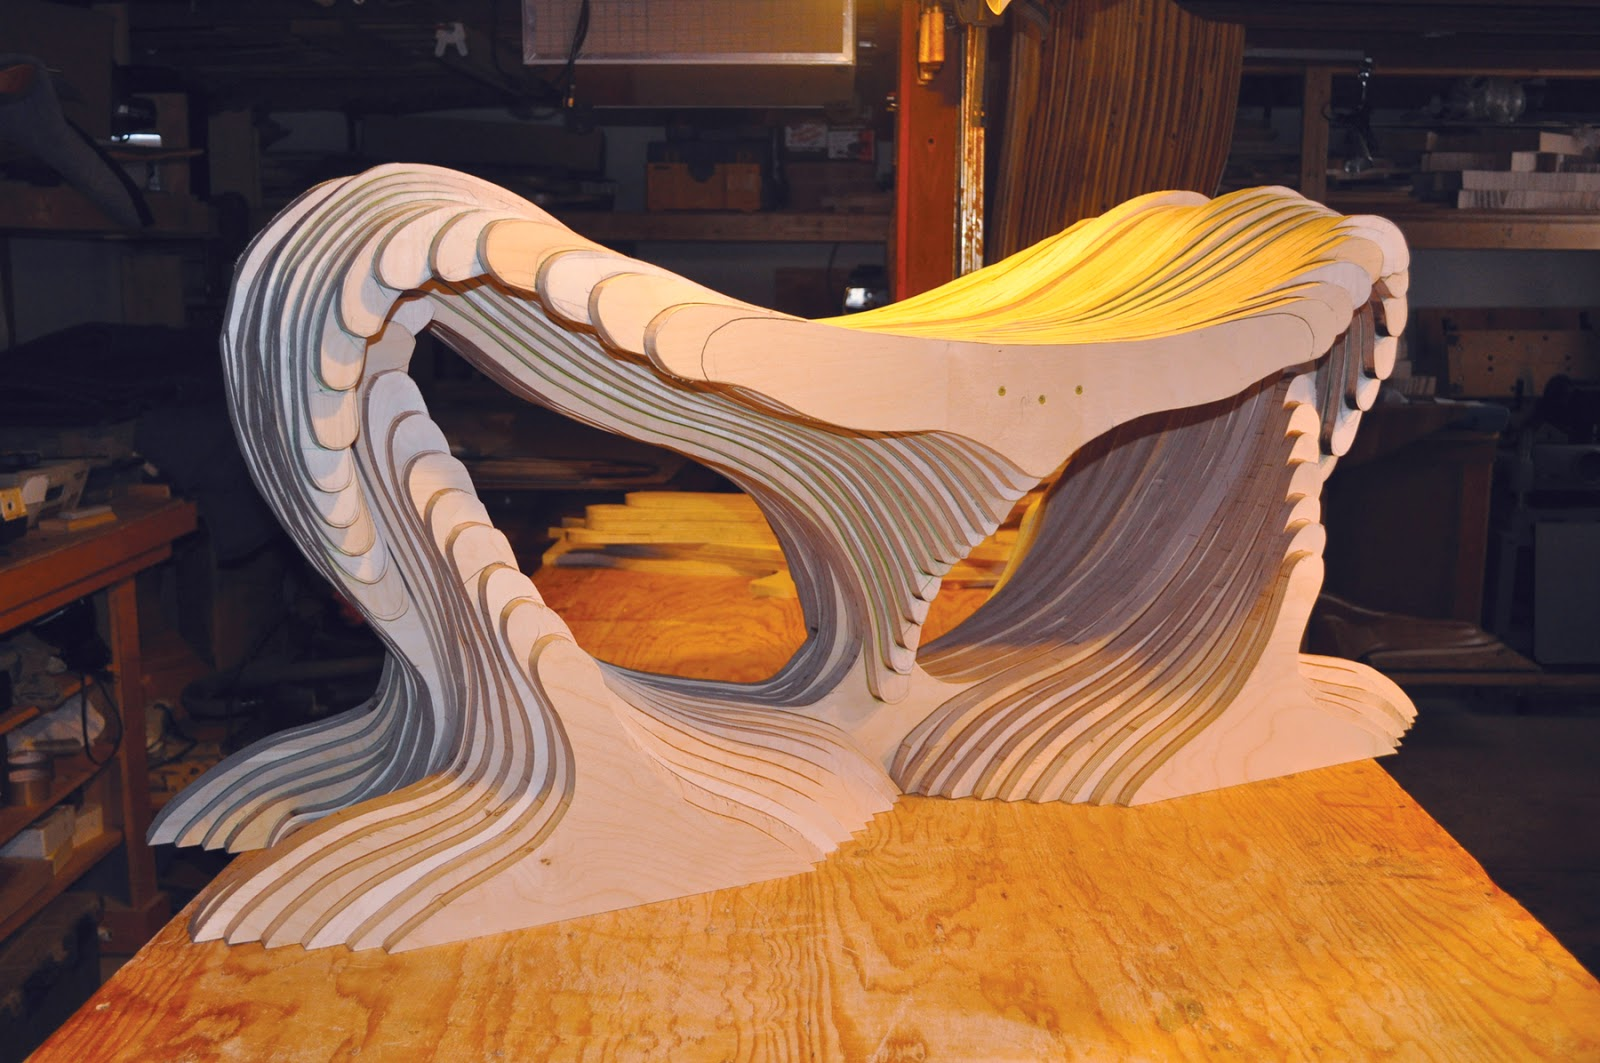 Latest Work In Progress 2017 Baltic Birch Plywood Embled And Ready To Refine Curves By Carving This Will Function As A Bench Or Table